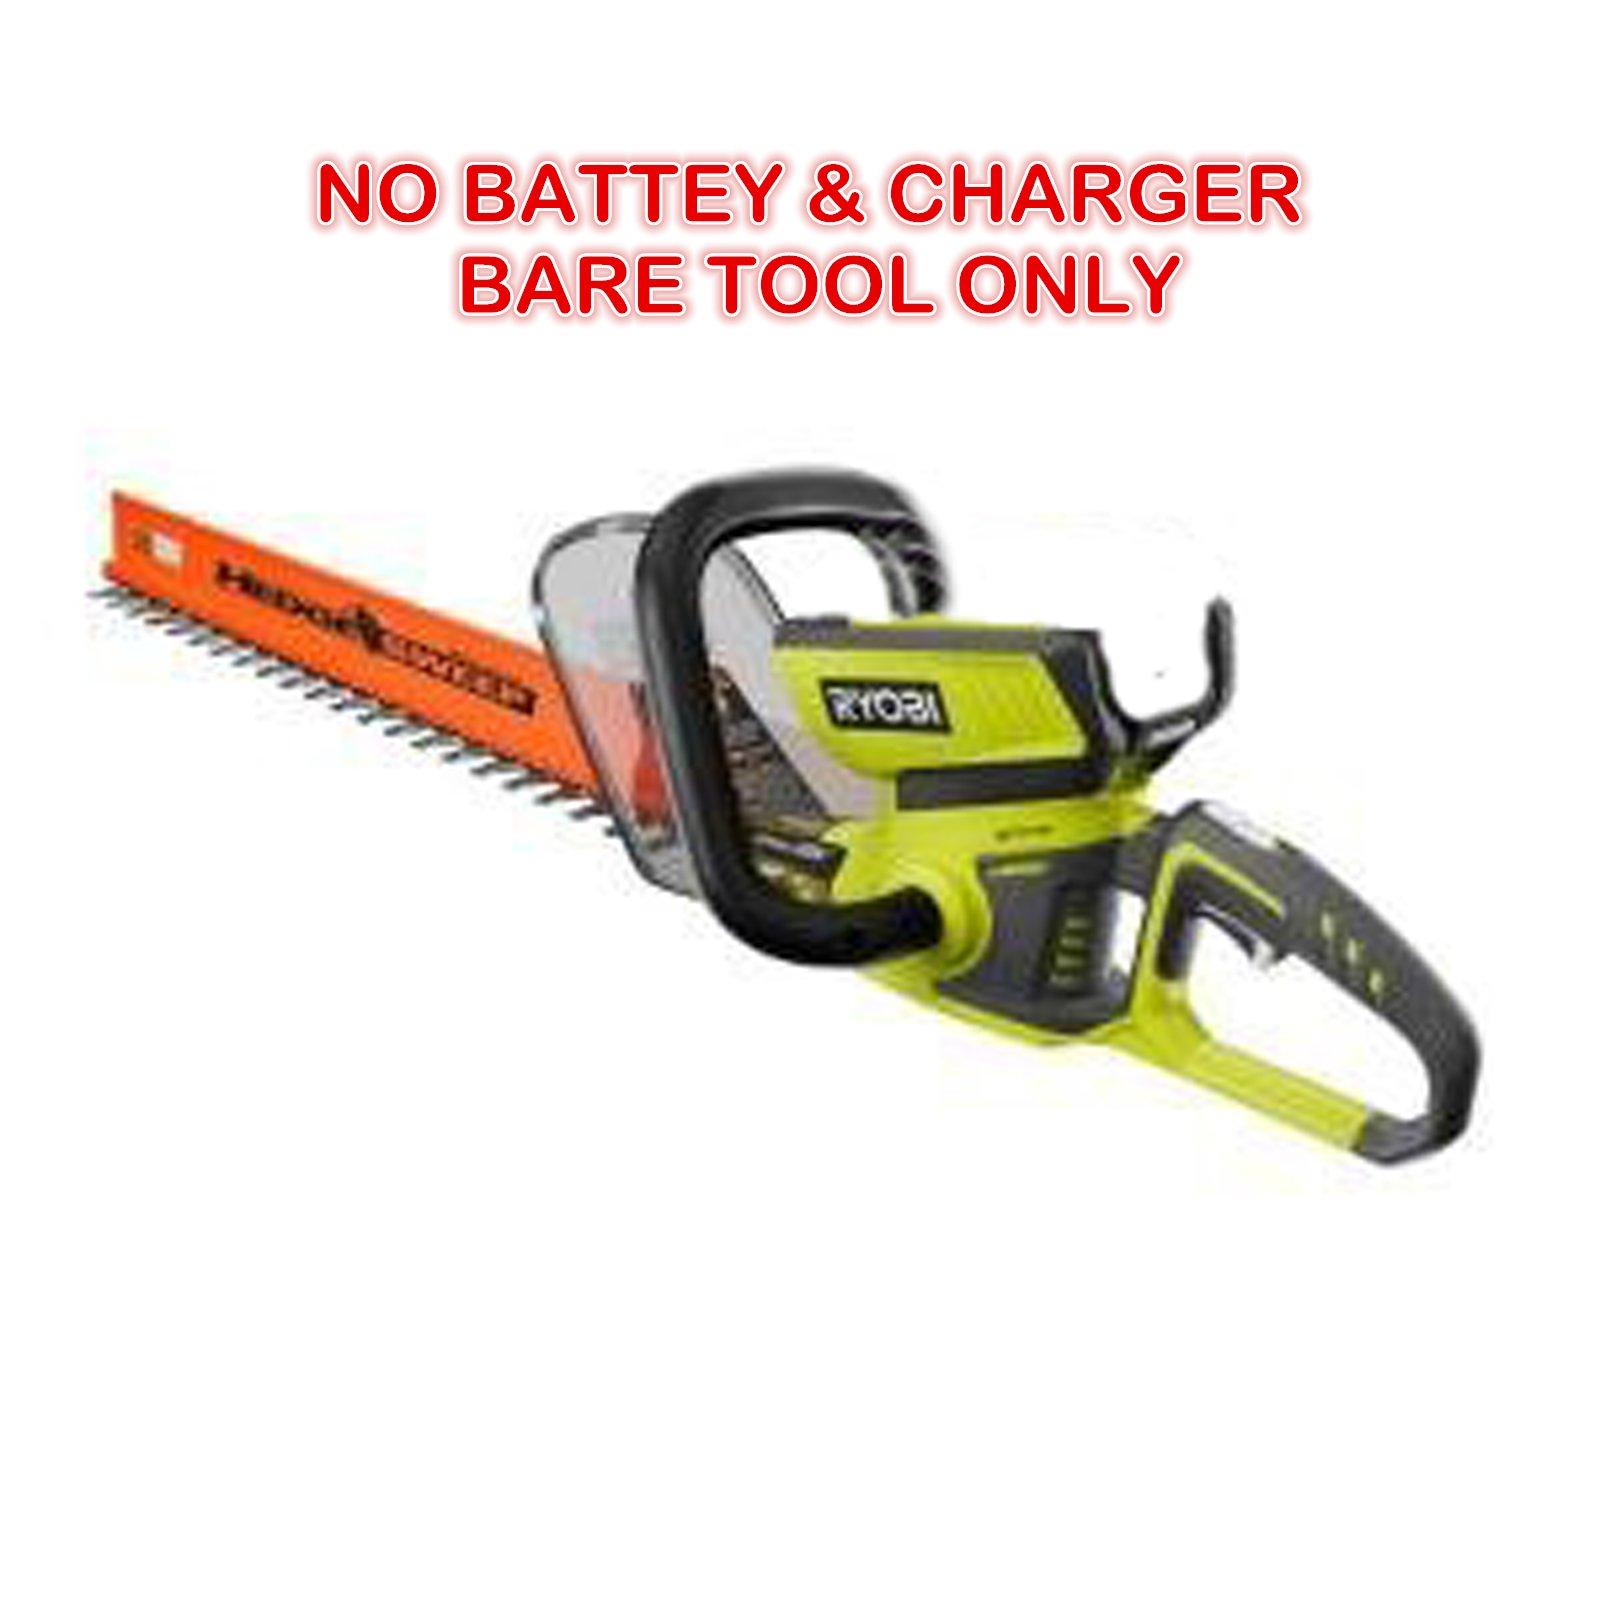 Ryobi 22 inch 40-Volt Lithium-ion Cordless Hedge Trimmer ONLY